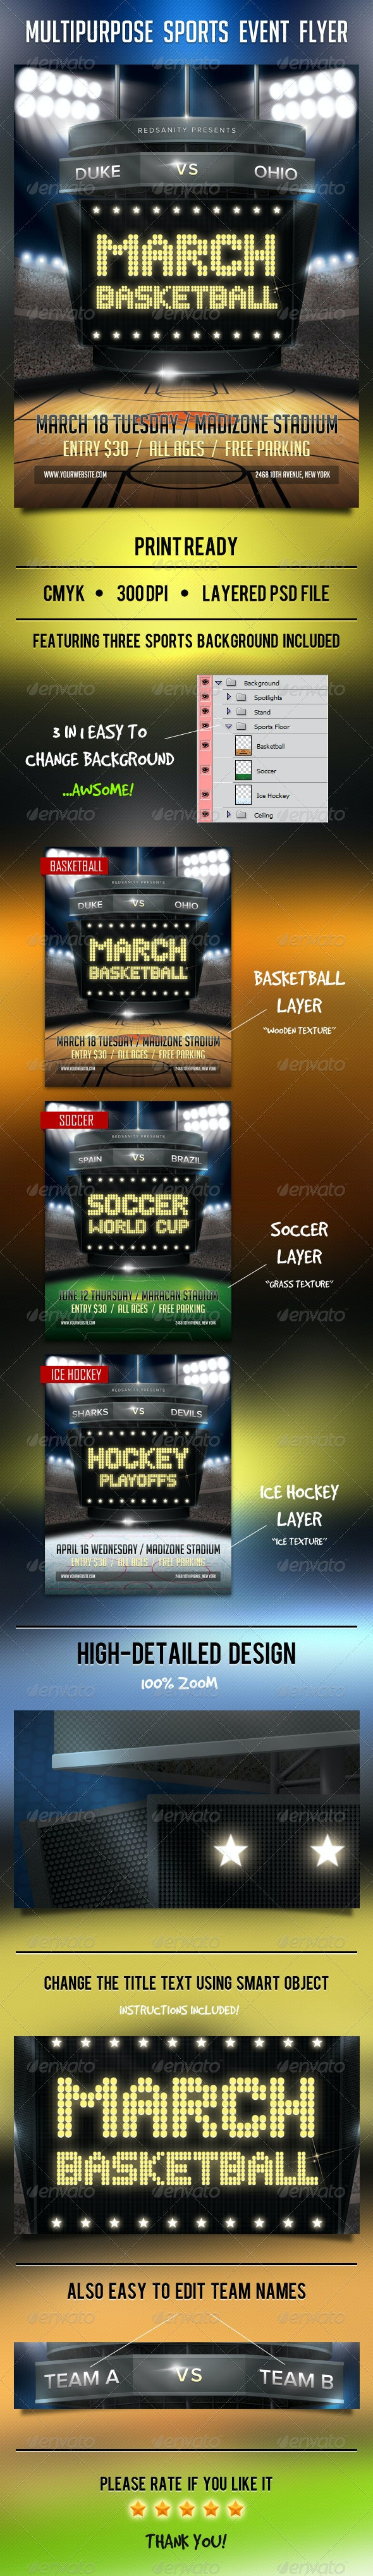 Multipurpose Sports Event Flyer - Sports Events